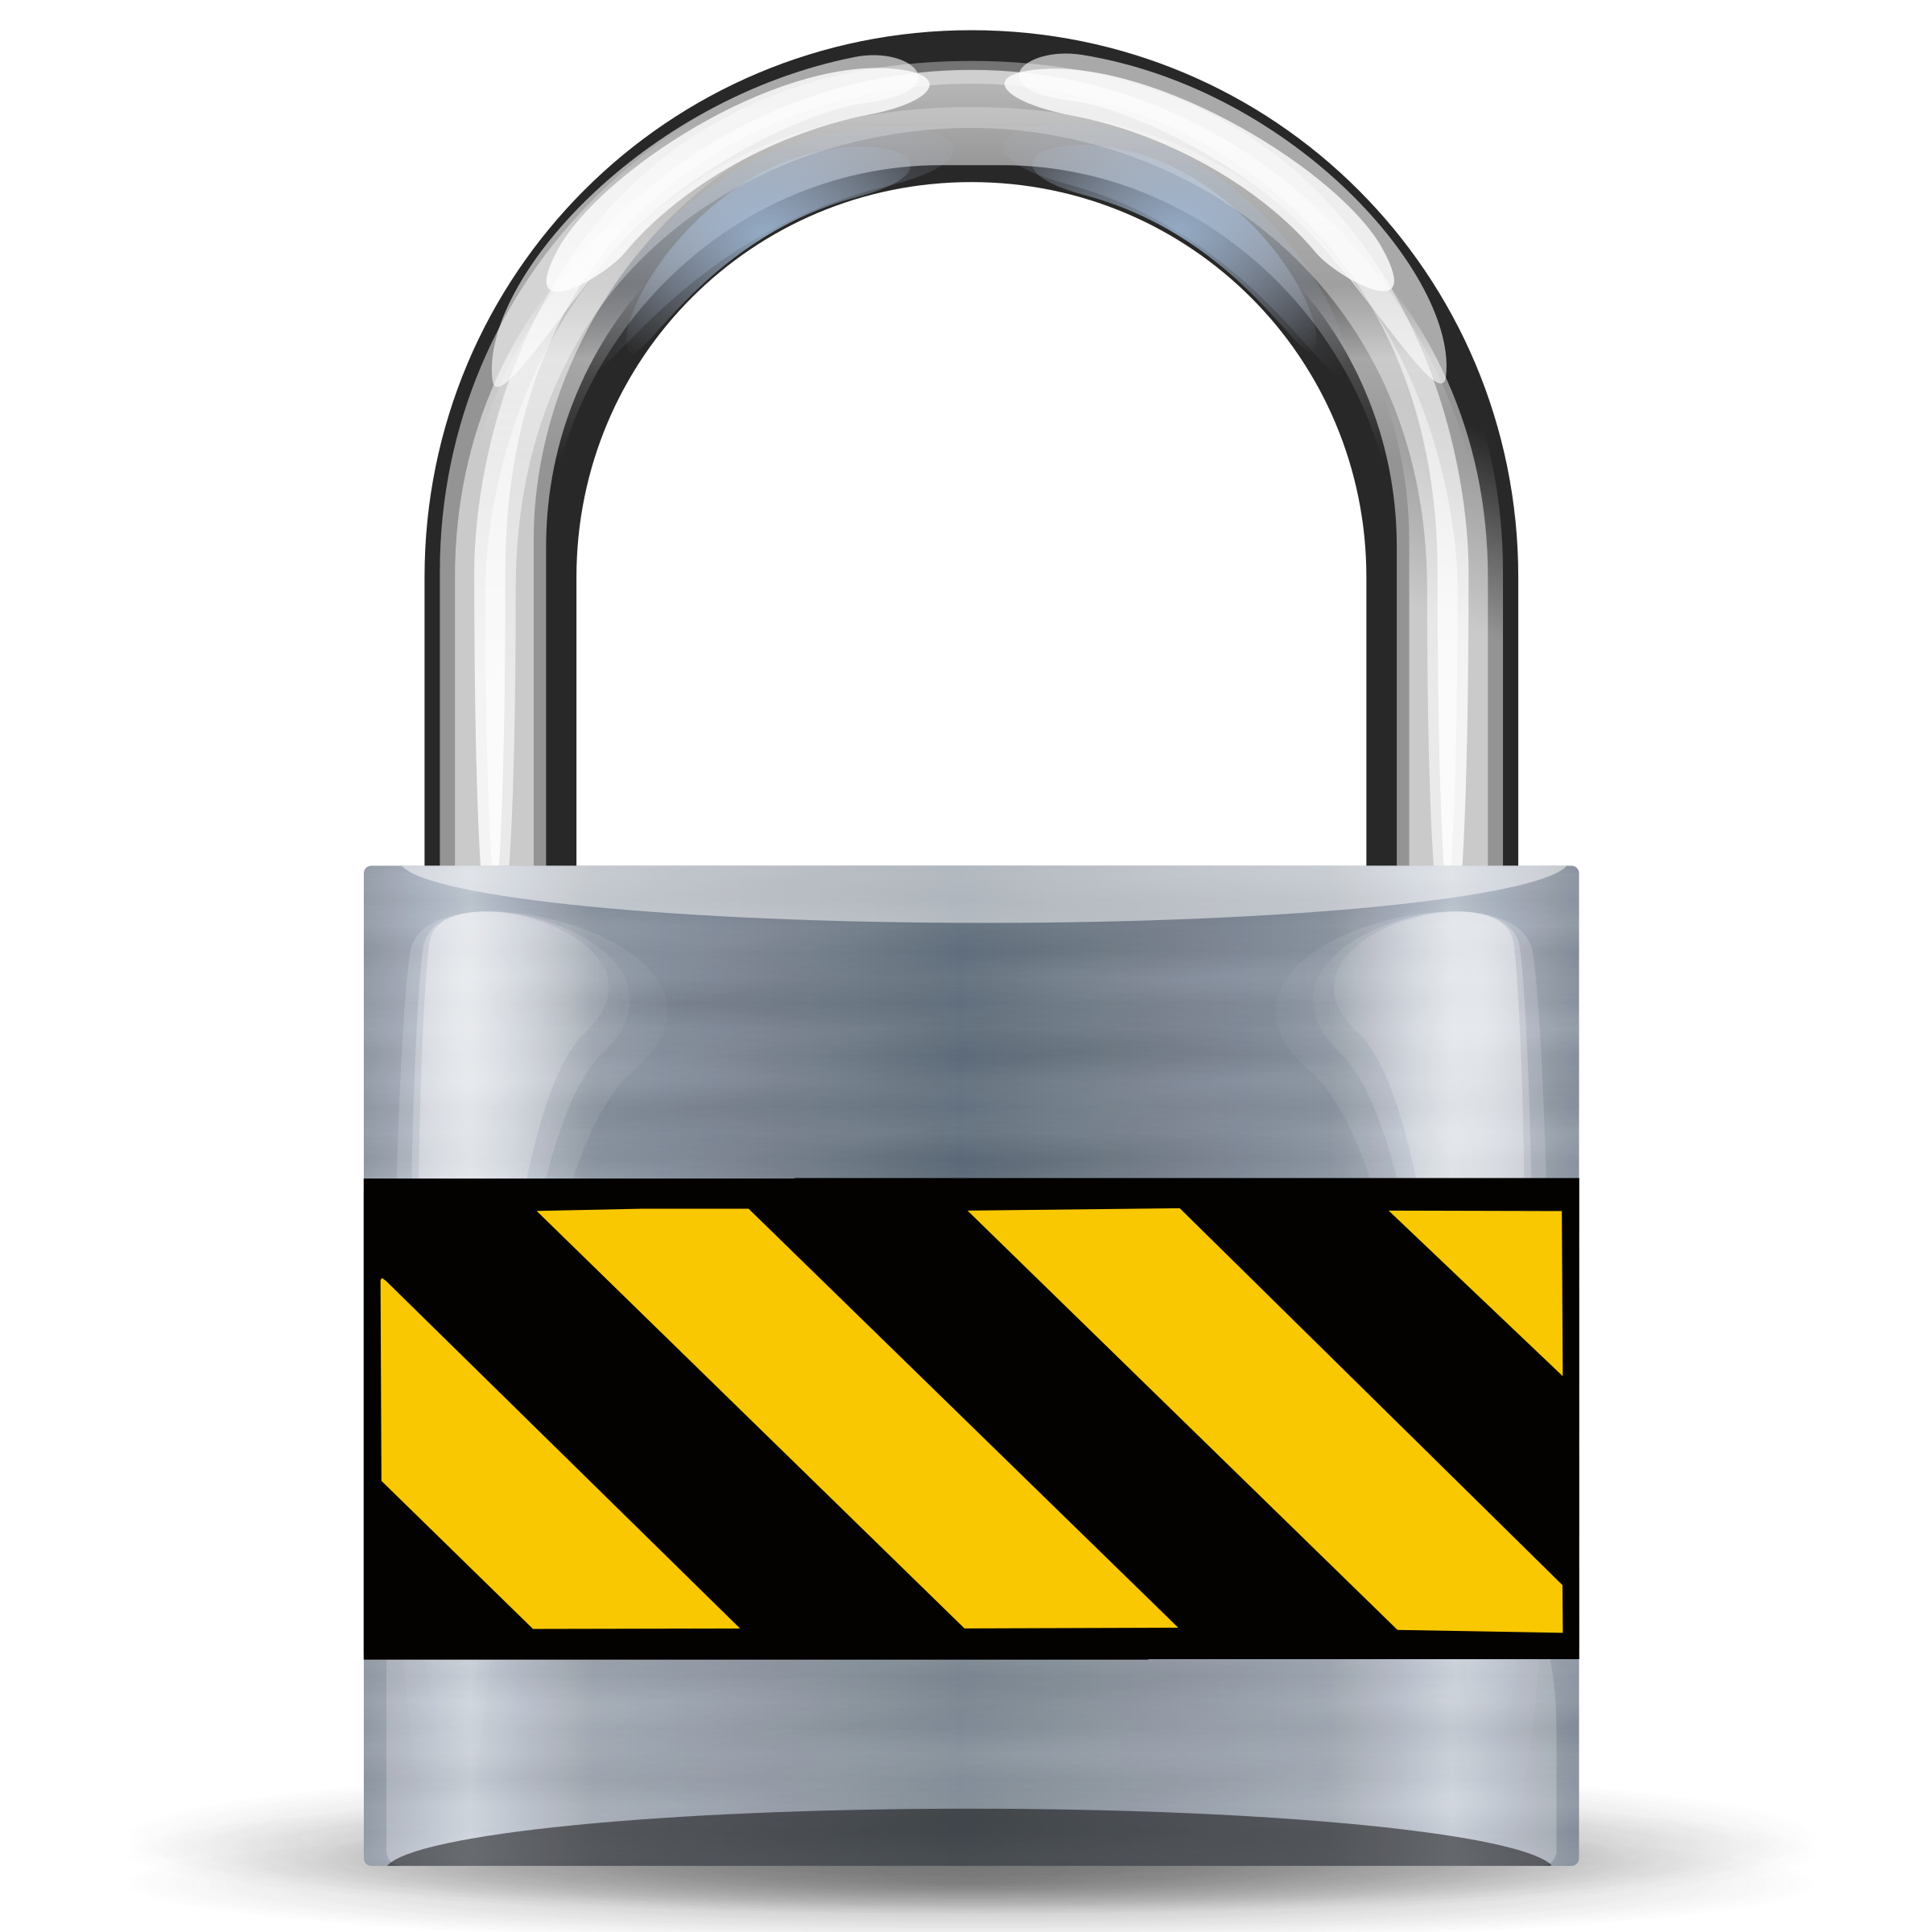 Clipart lock x dumielauxepices. Transparent padlock blue image freeuse library